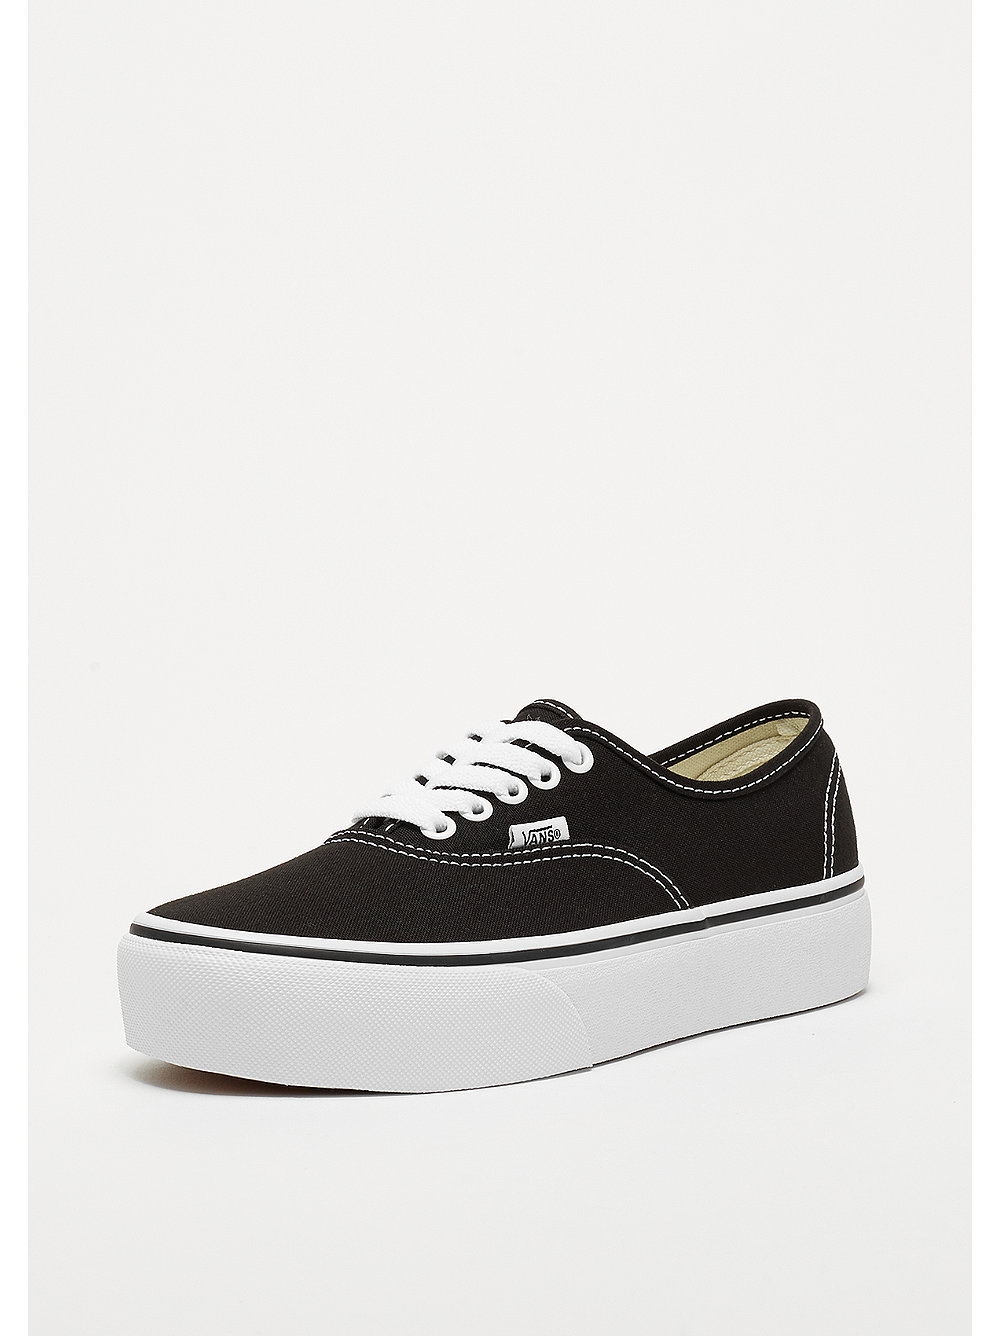 vans damen authentic platform 2.0 sneaker schwarz